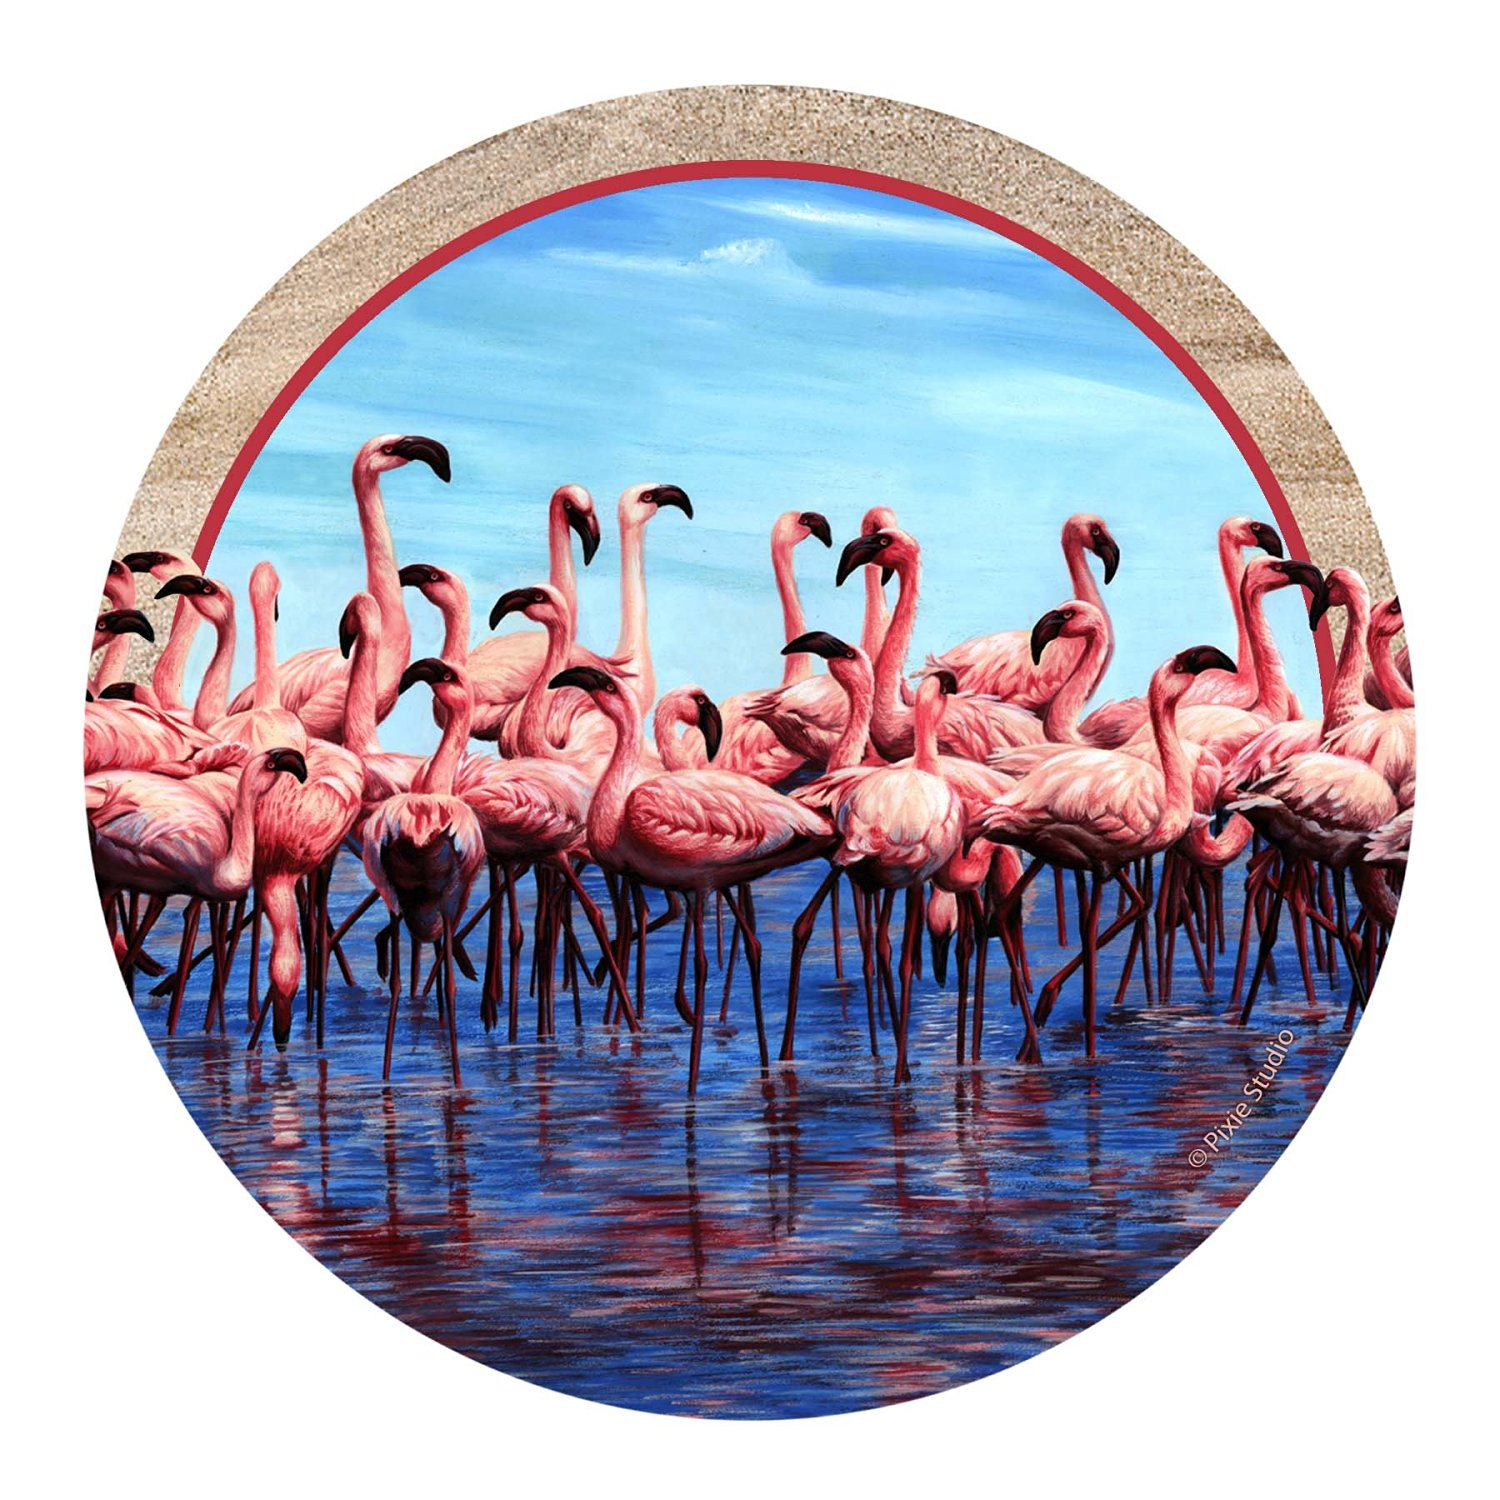 Thirstystone Drink Coaster Set, Flamingos